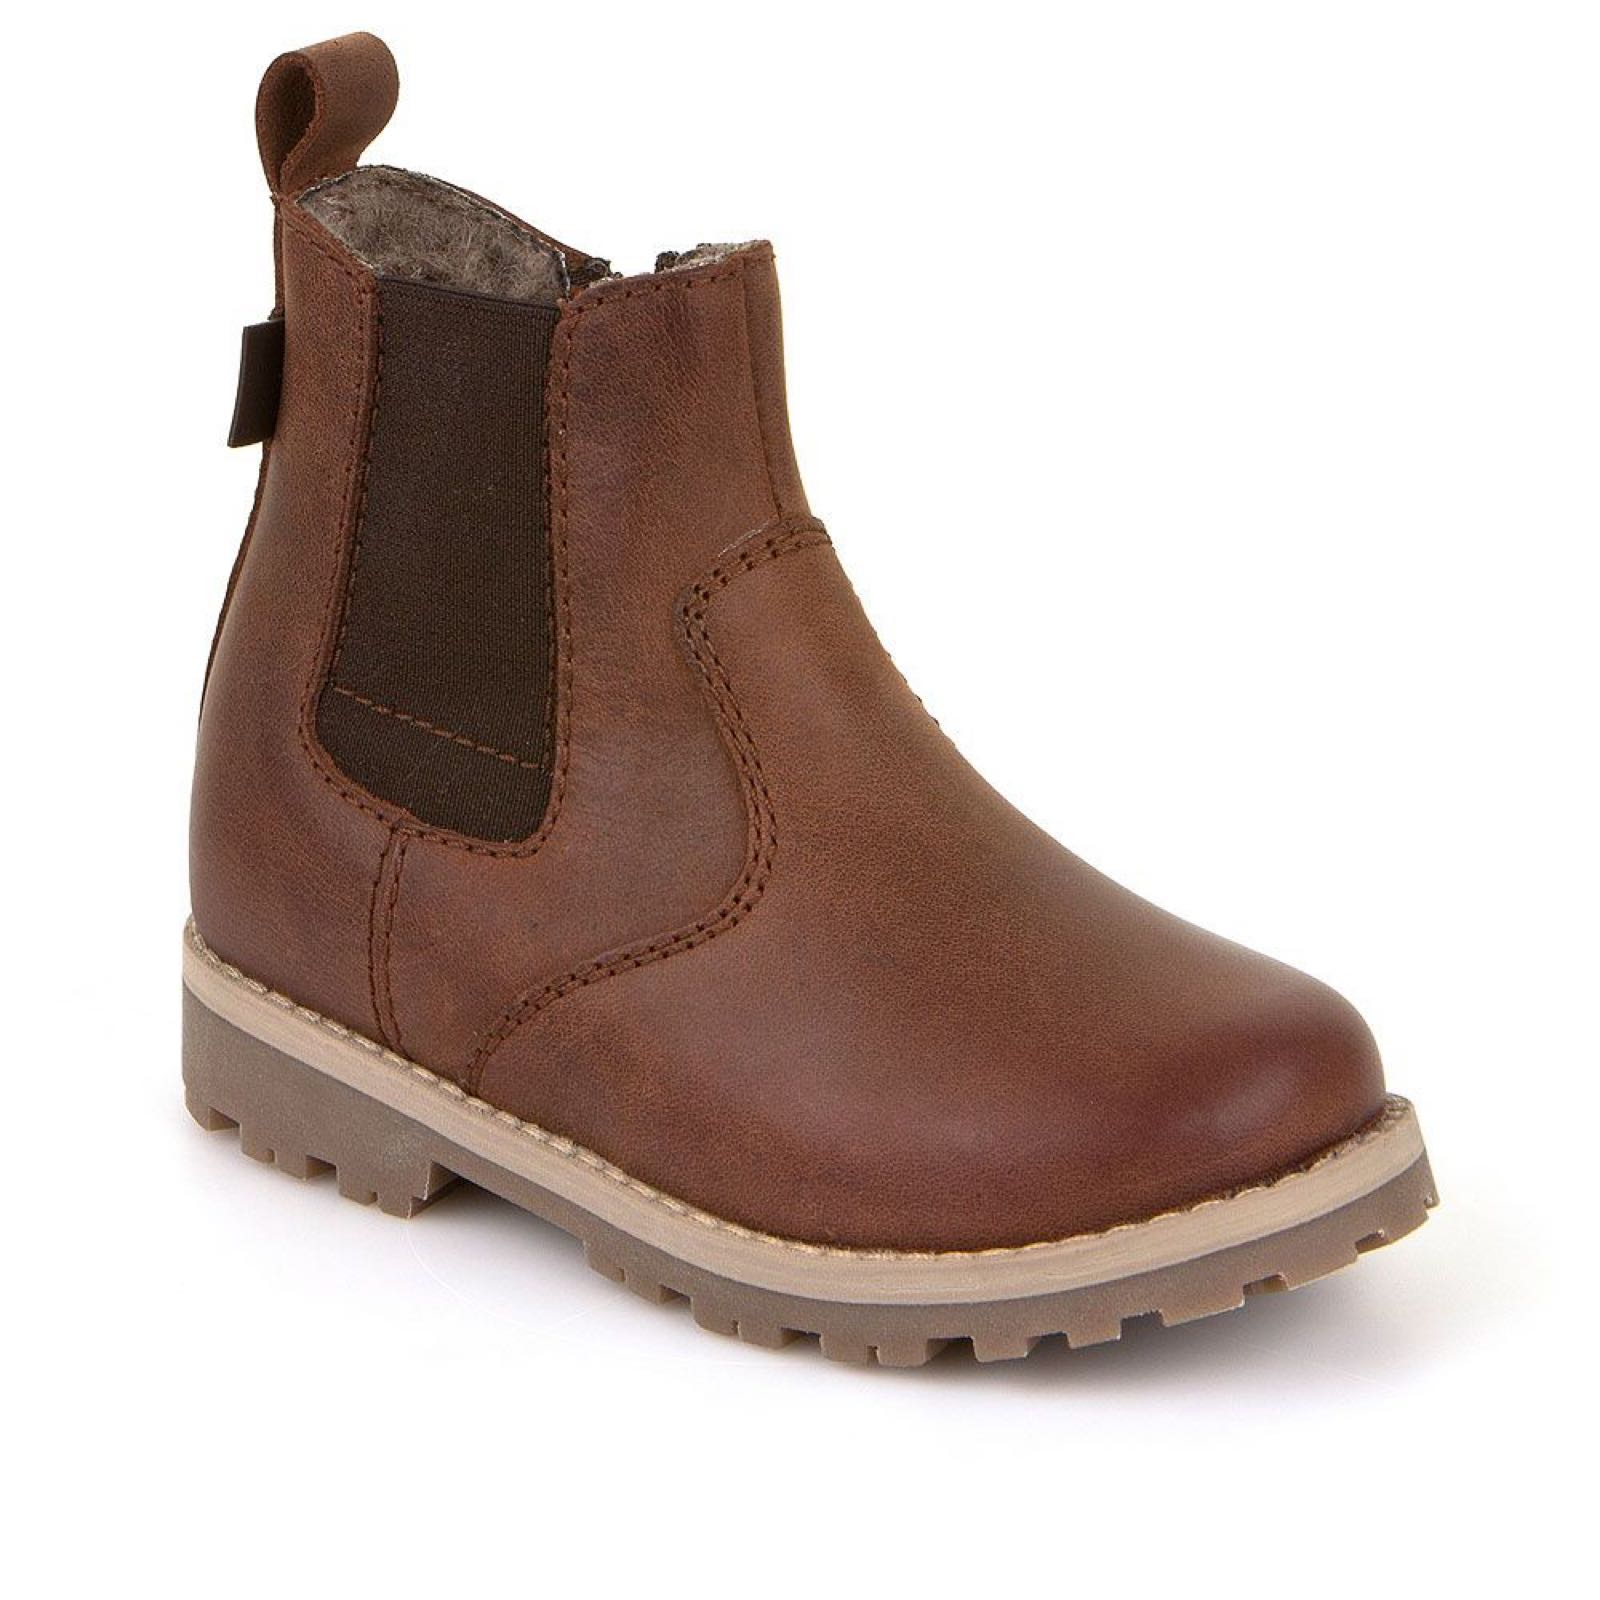 Froddo Brown Boot G3160111-5kŷ